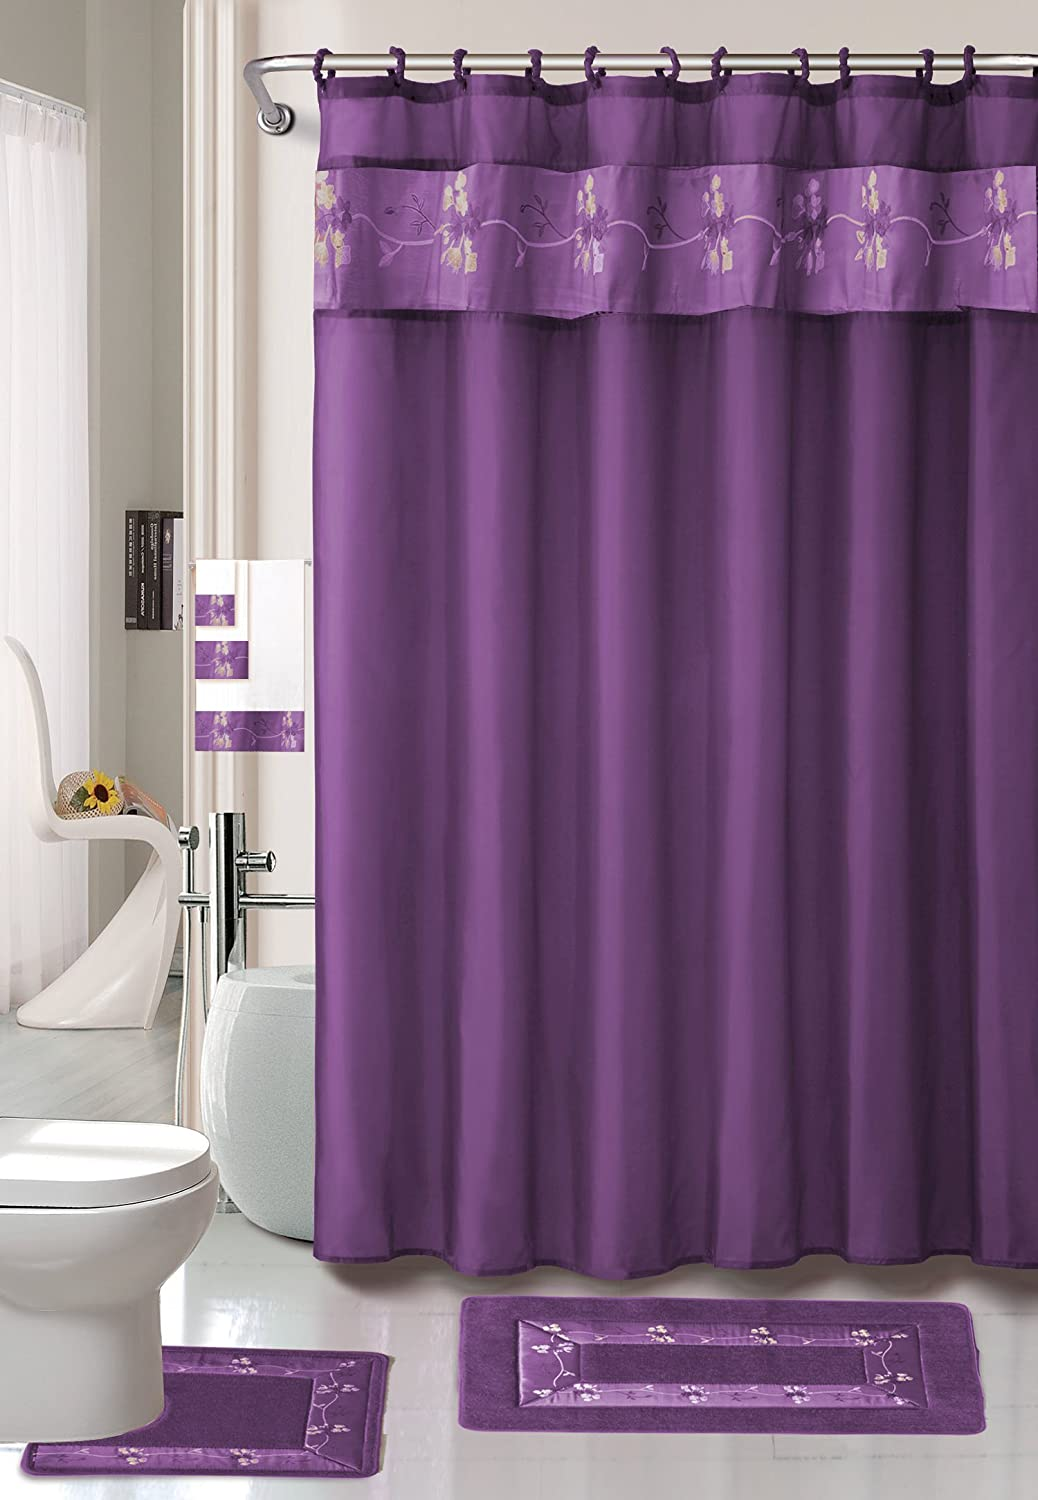 amazoncom purple flower 18 piece bathroom set 2 rugsmats 1 fabric shower curtain 12 fabric covered rings 3 pc decorative towel set home kitchen